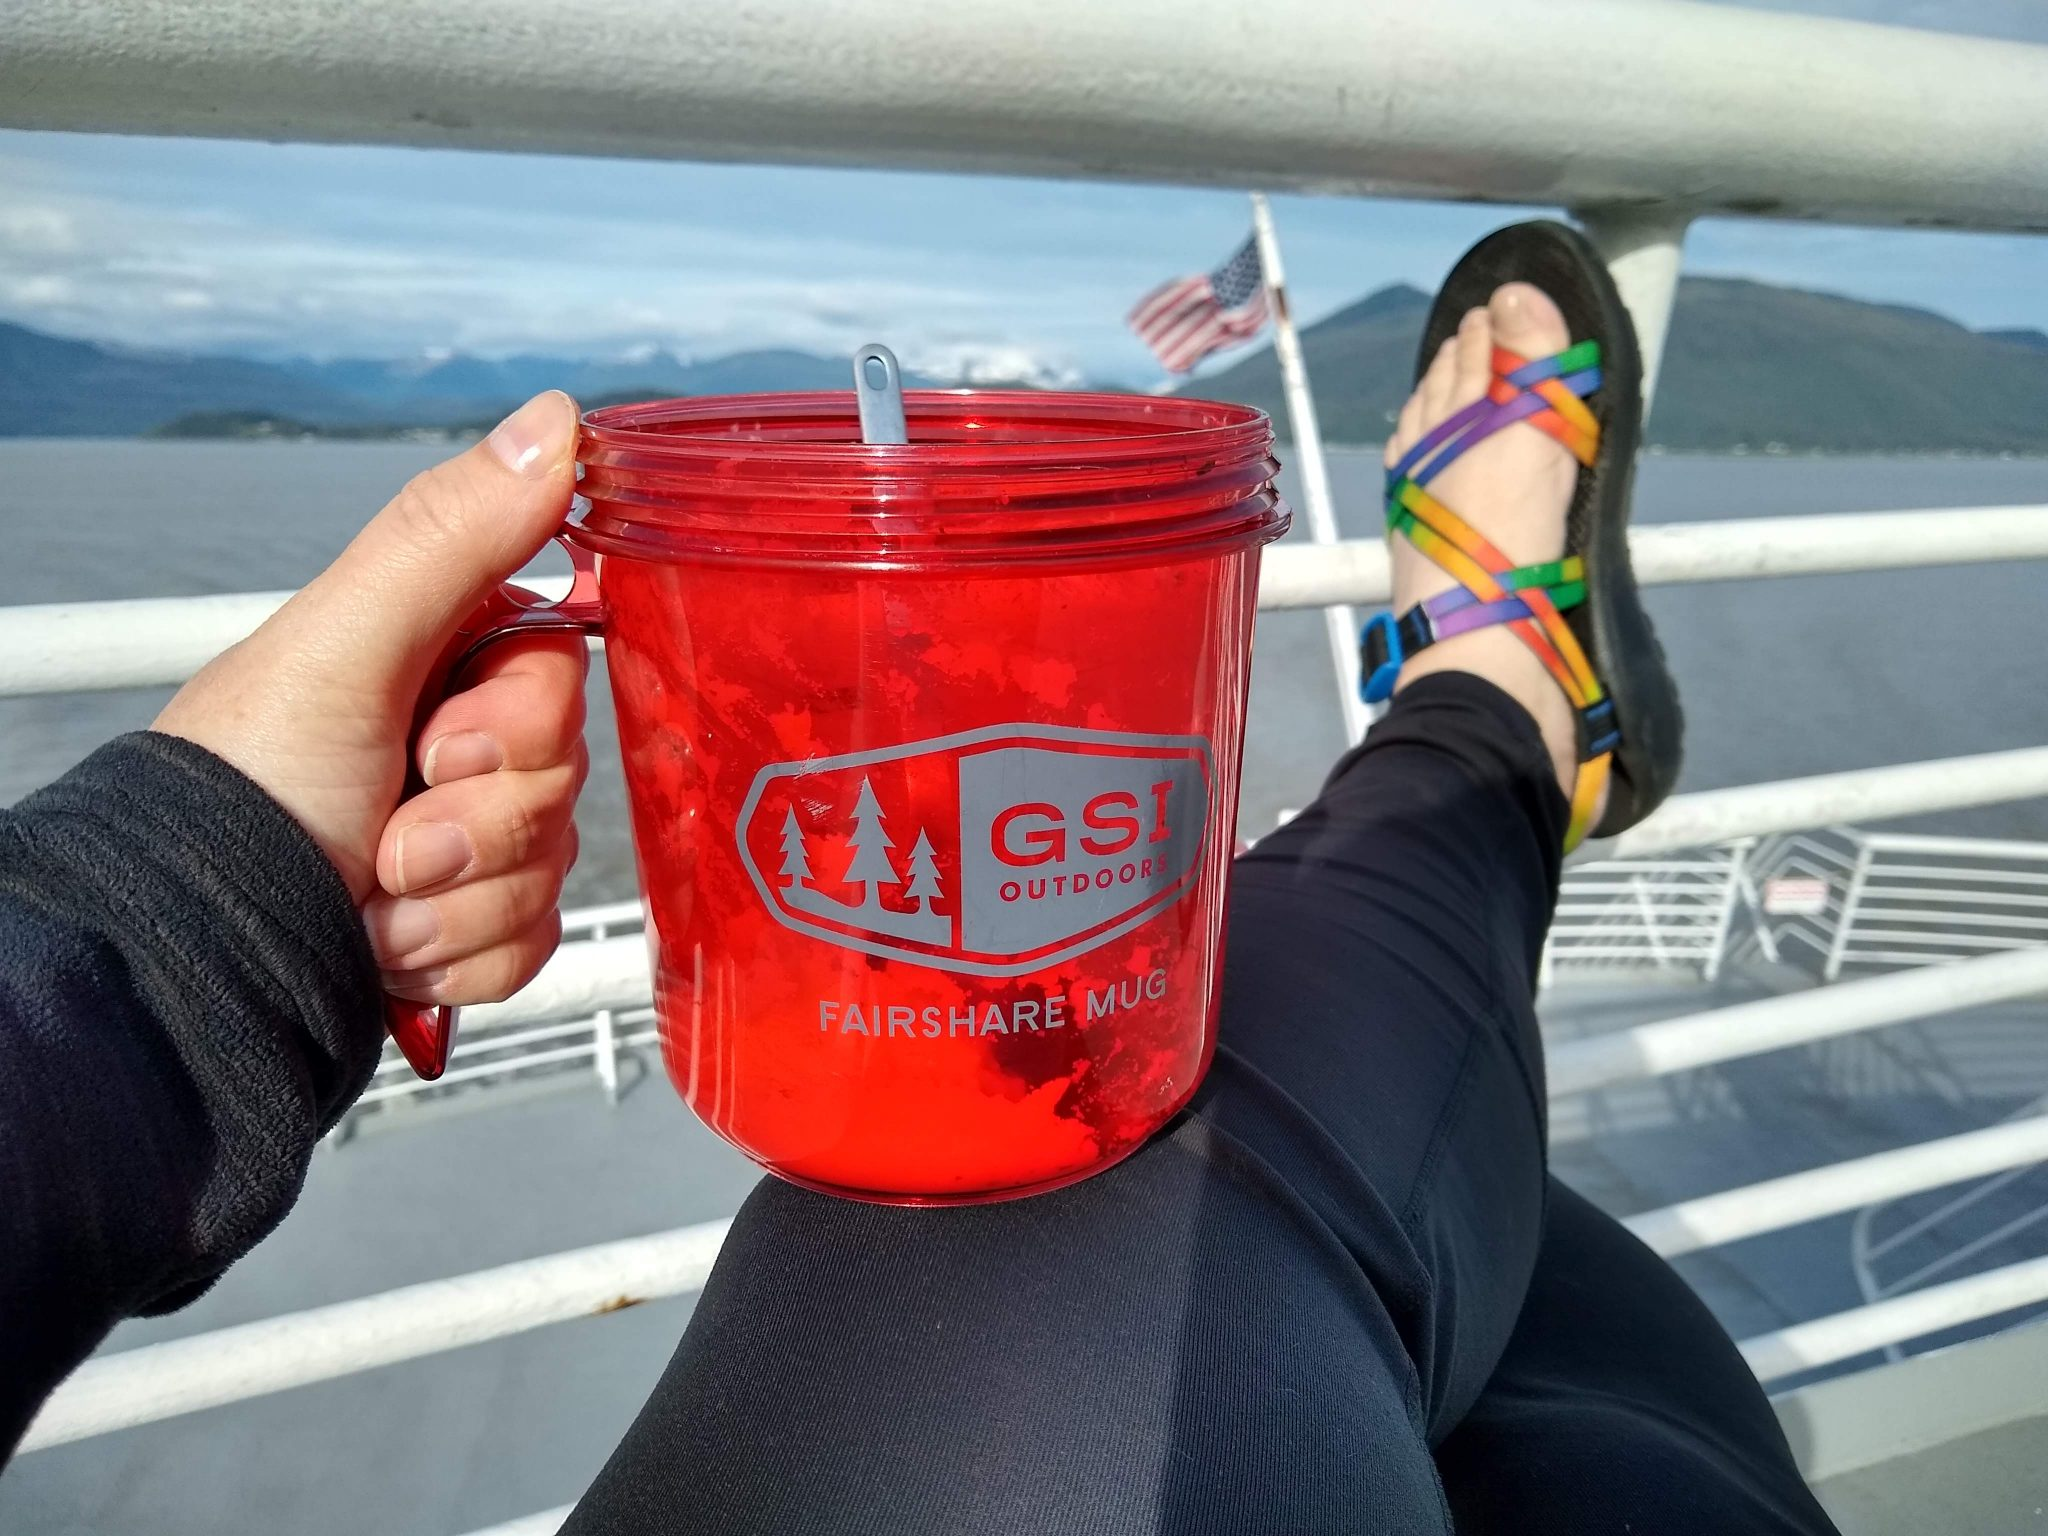 A woman is on the deck of a ship. We can see only her legs, feet and hand holding a red mug with food in it.